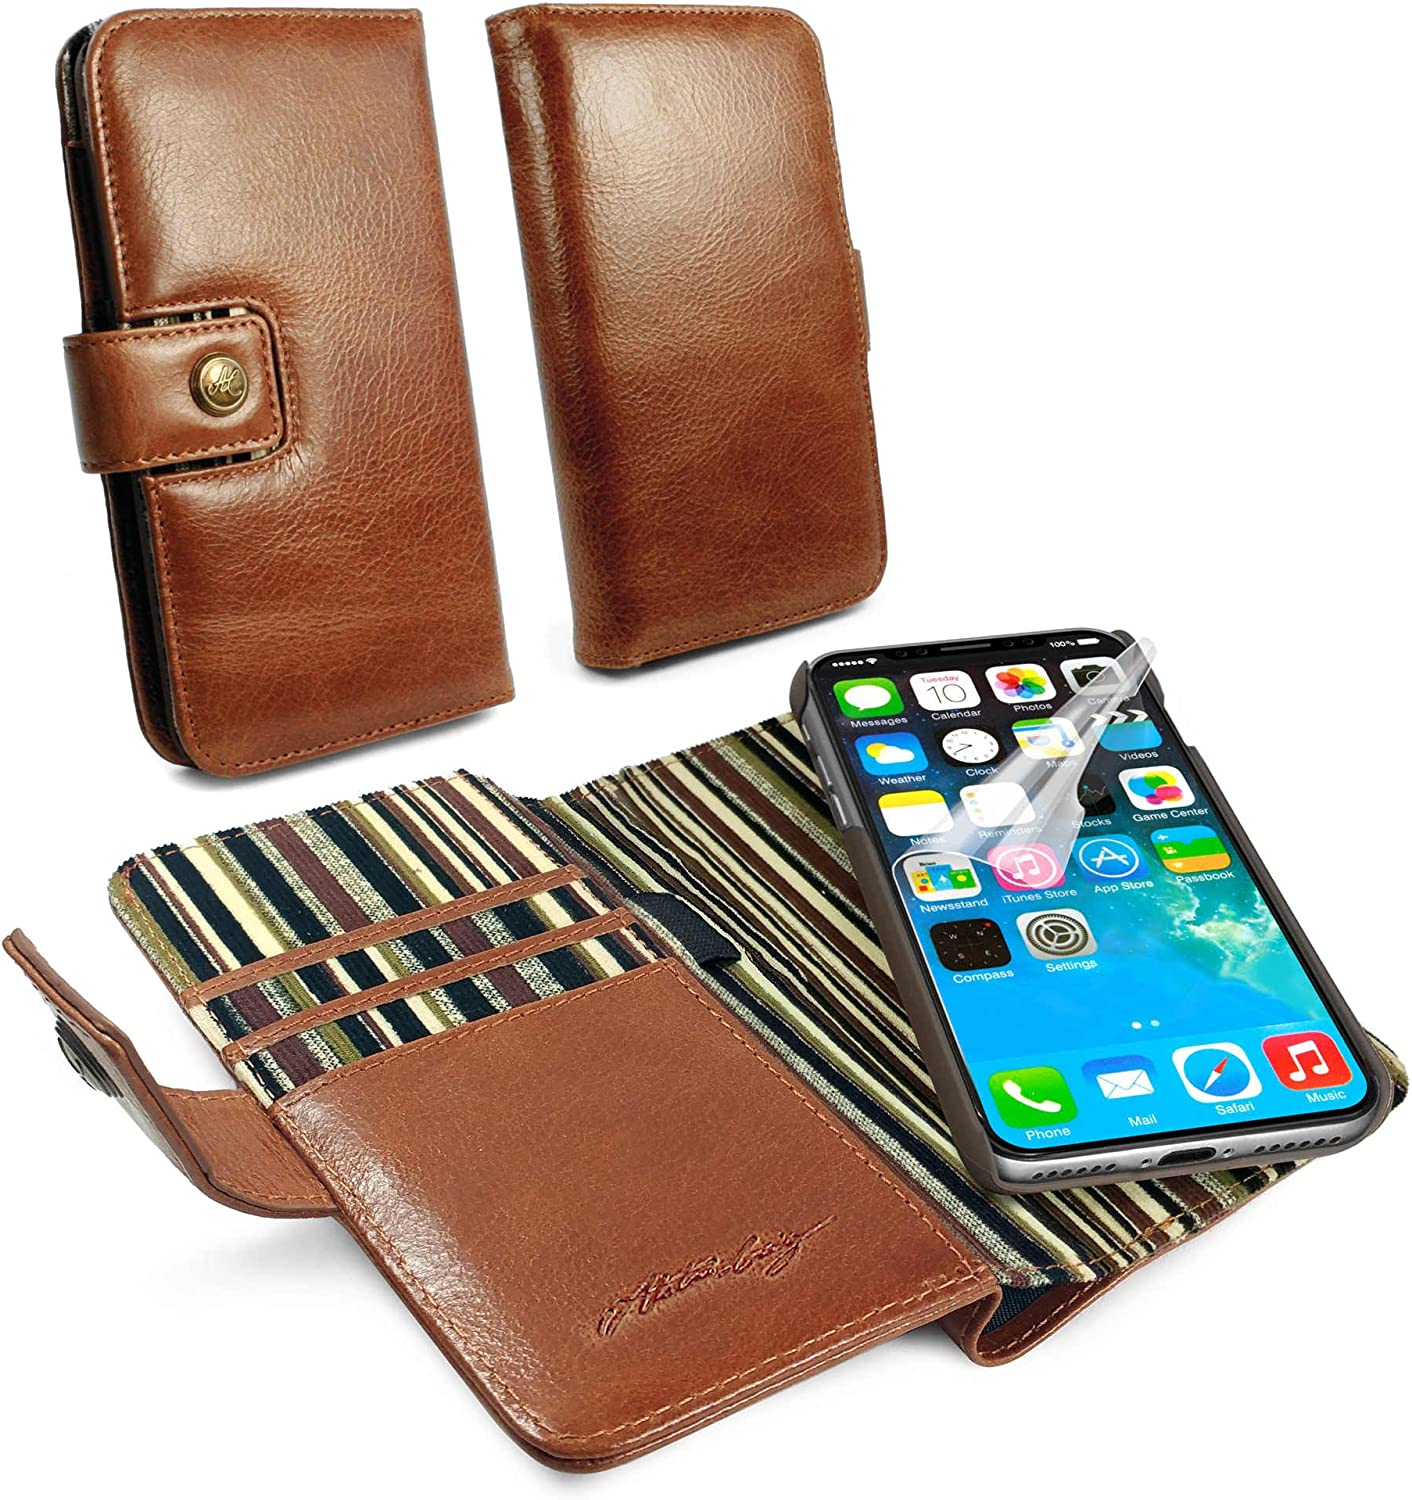 Alston Craig C3_88 Gentlemen's Traditional Vintage Genuine Leather [with RFID Blocking] Magnetic Shell Folio Wallet Case Cover with Bill Fold for iPhone X/XS - Brown 812DYeTWjnLSL1500_